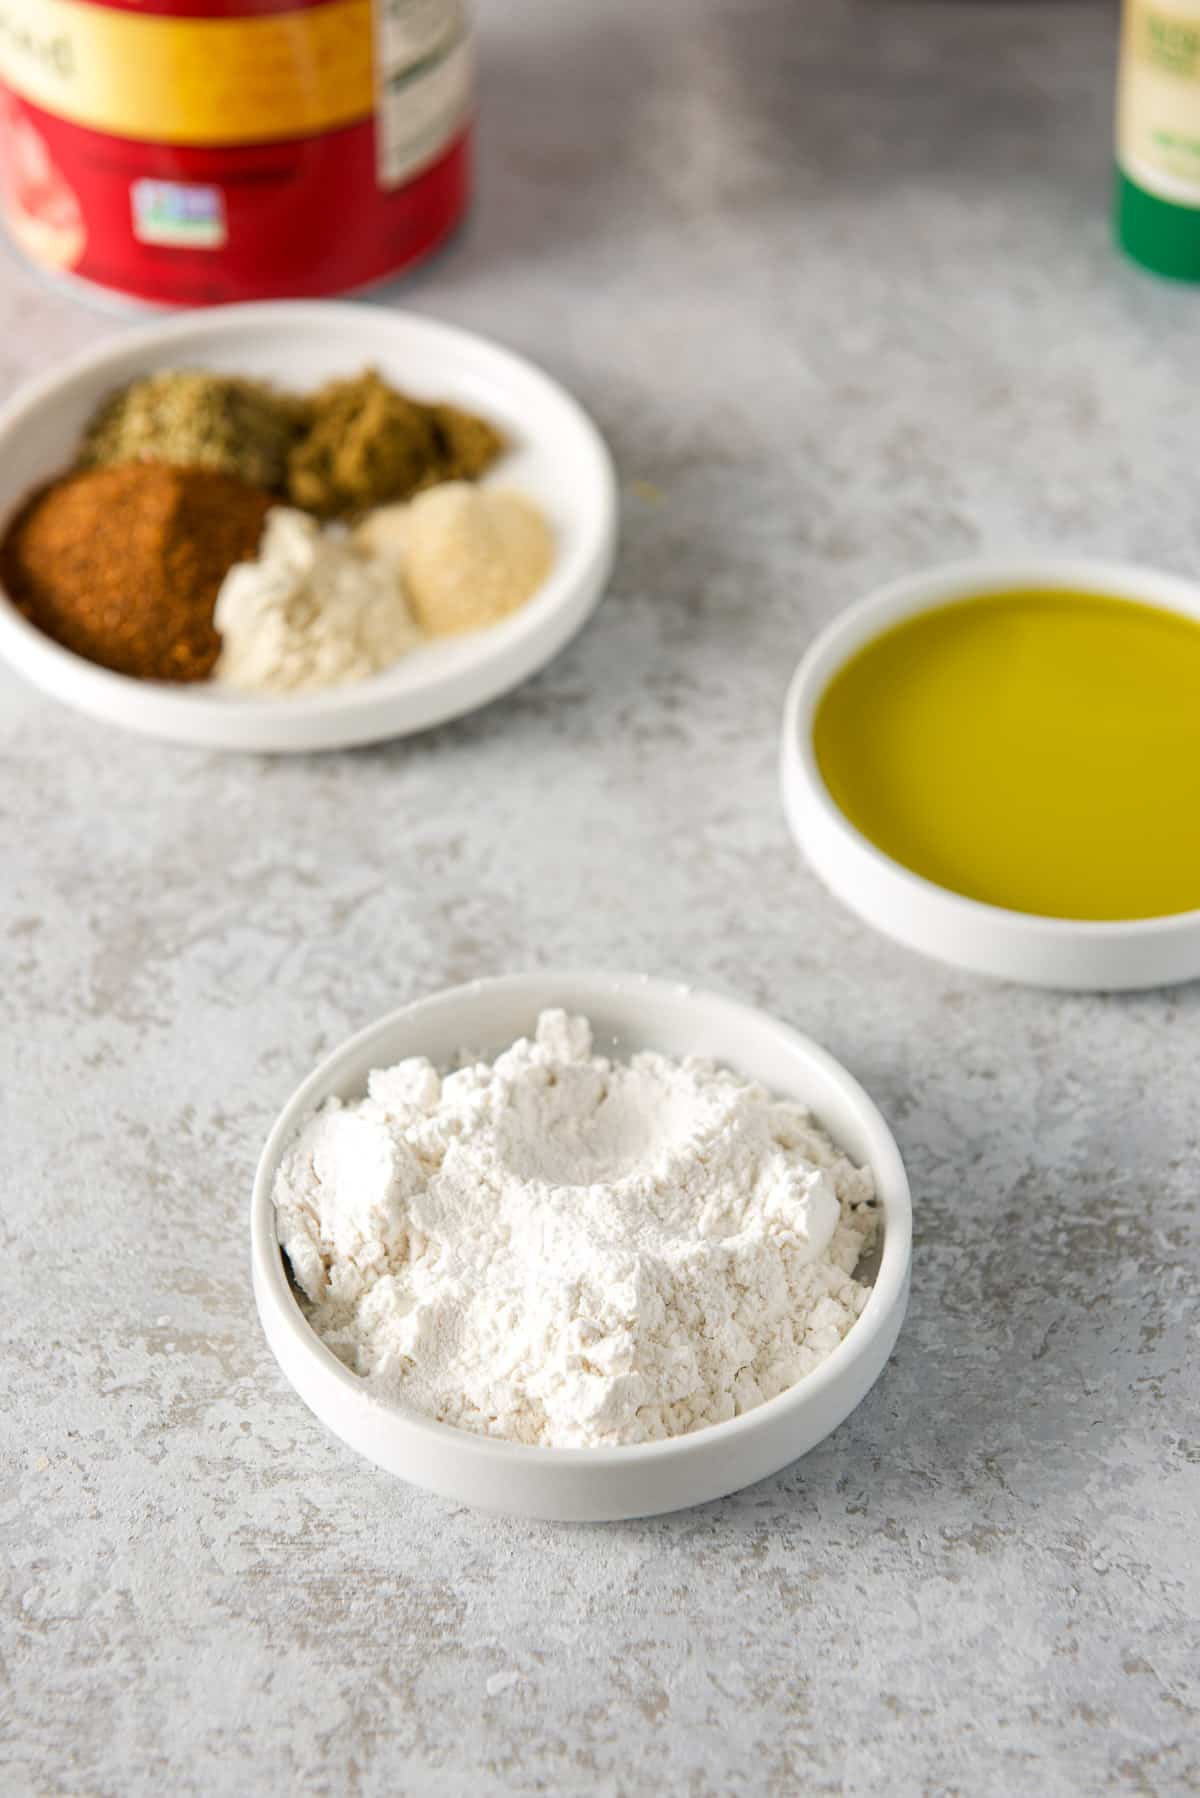 Flour, olive oil, spices and herbs in small white plates